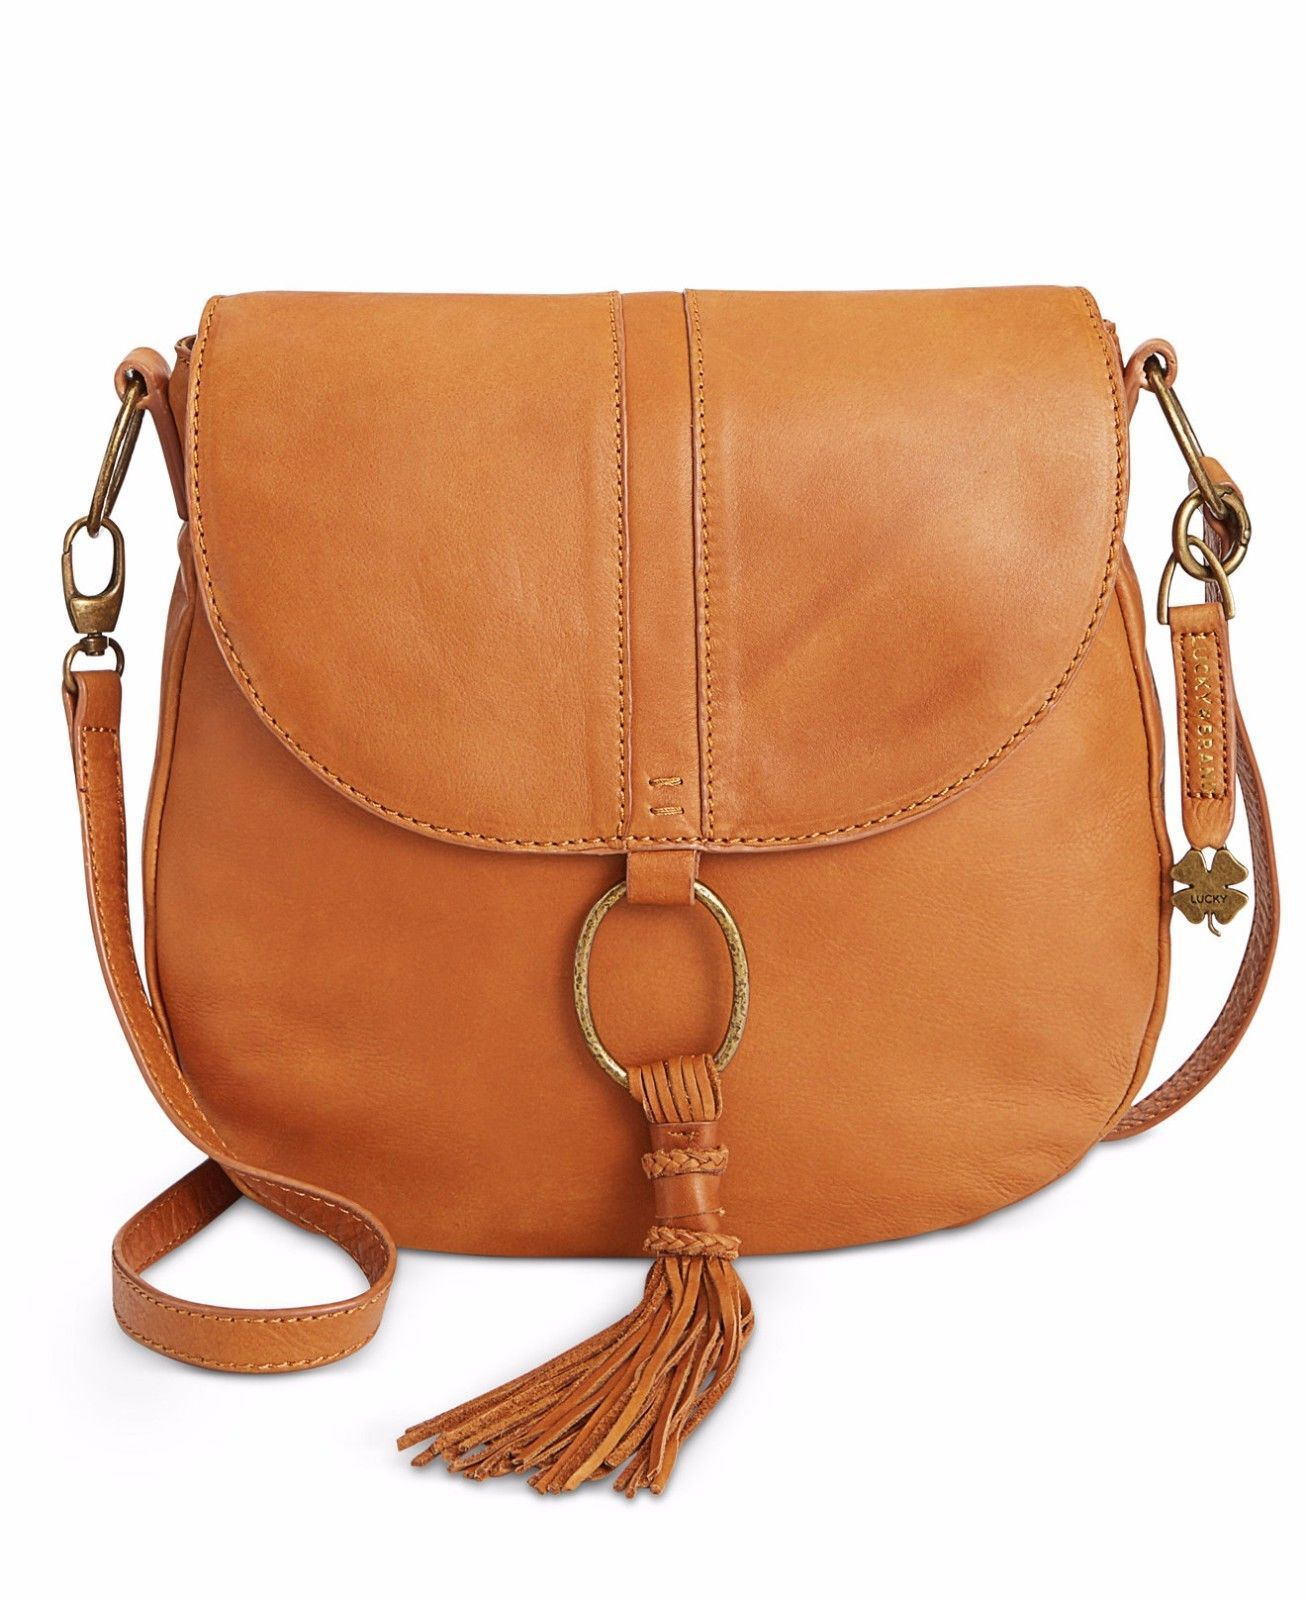 Primary image for Lucky Brand Athena Convertible Flap Saddle Bag MSRP: $188